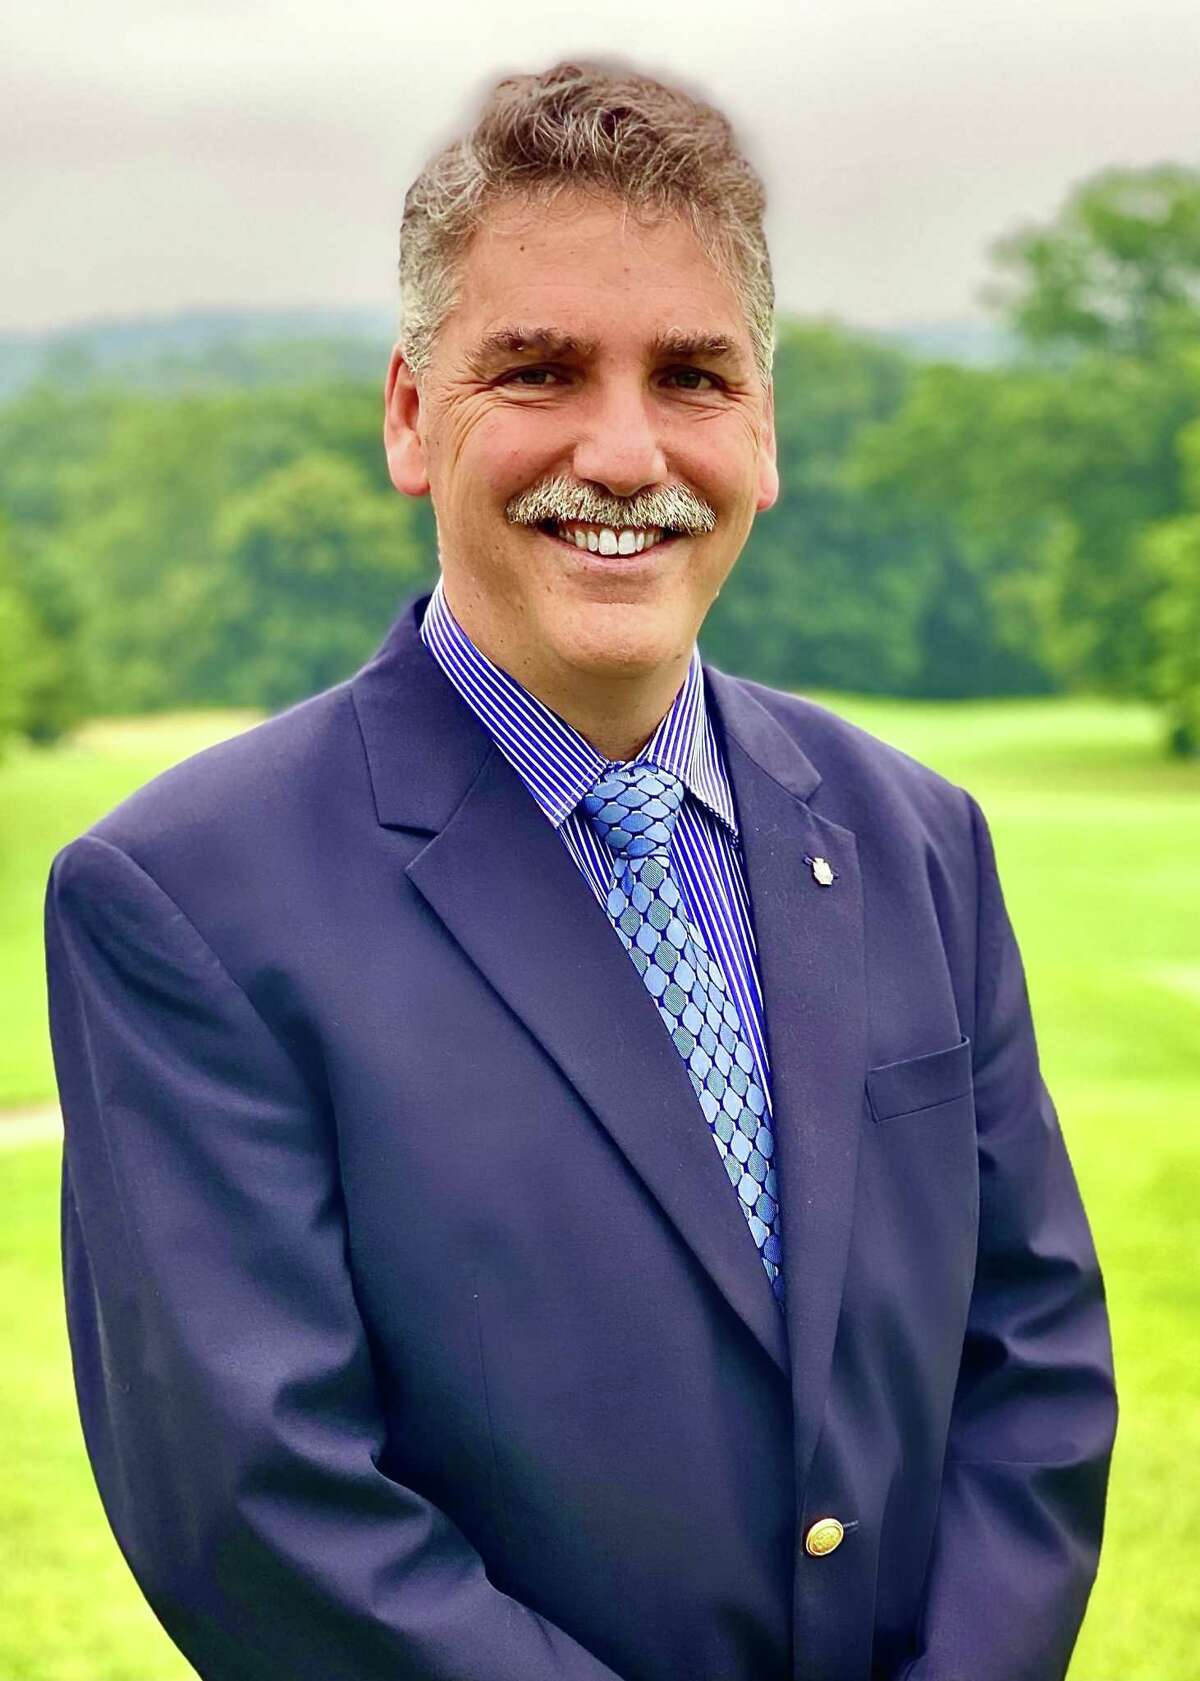 John Diehl, Southbury Democratic candidate for First Selectman